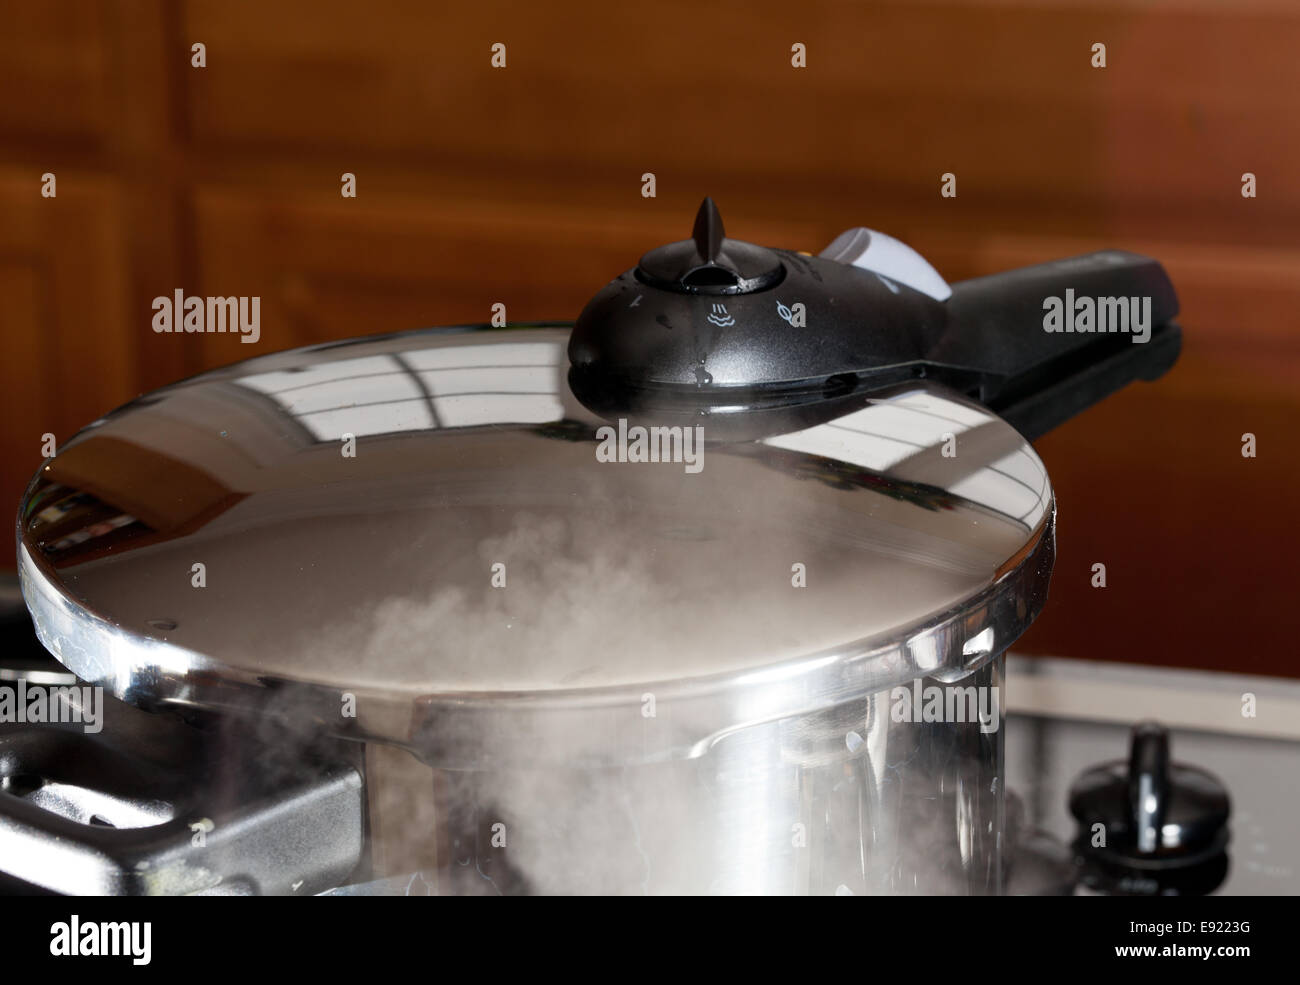 Pressure being released from cooker on hob - Stock Image